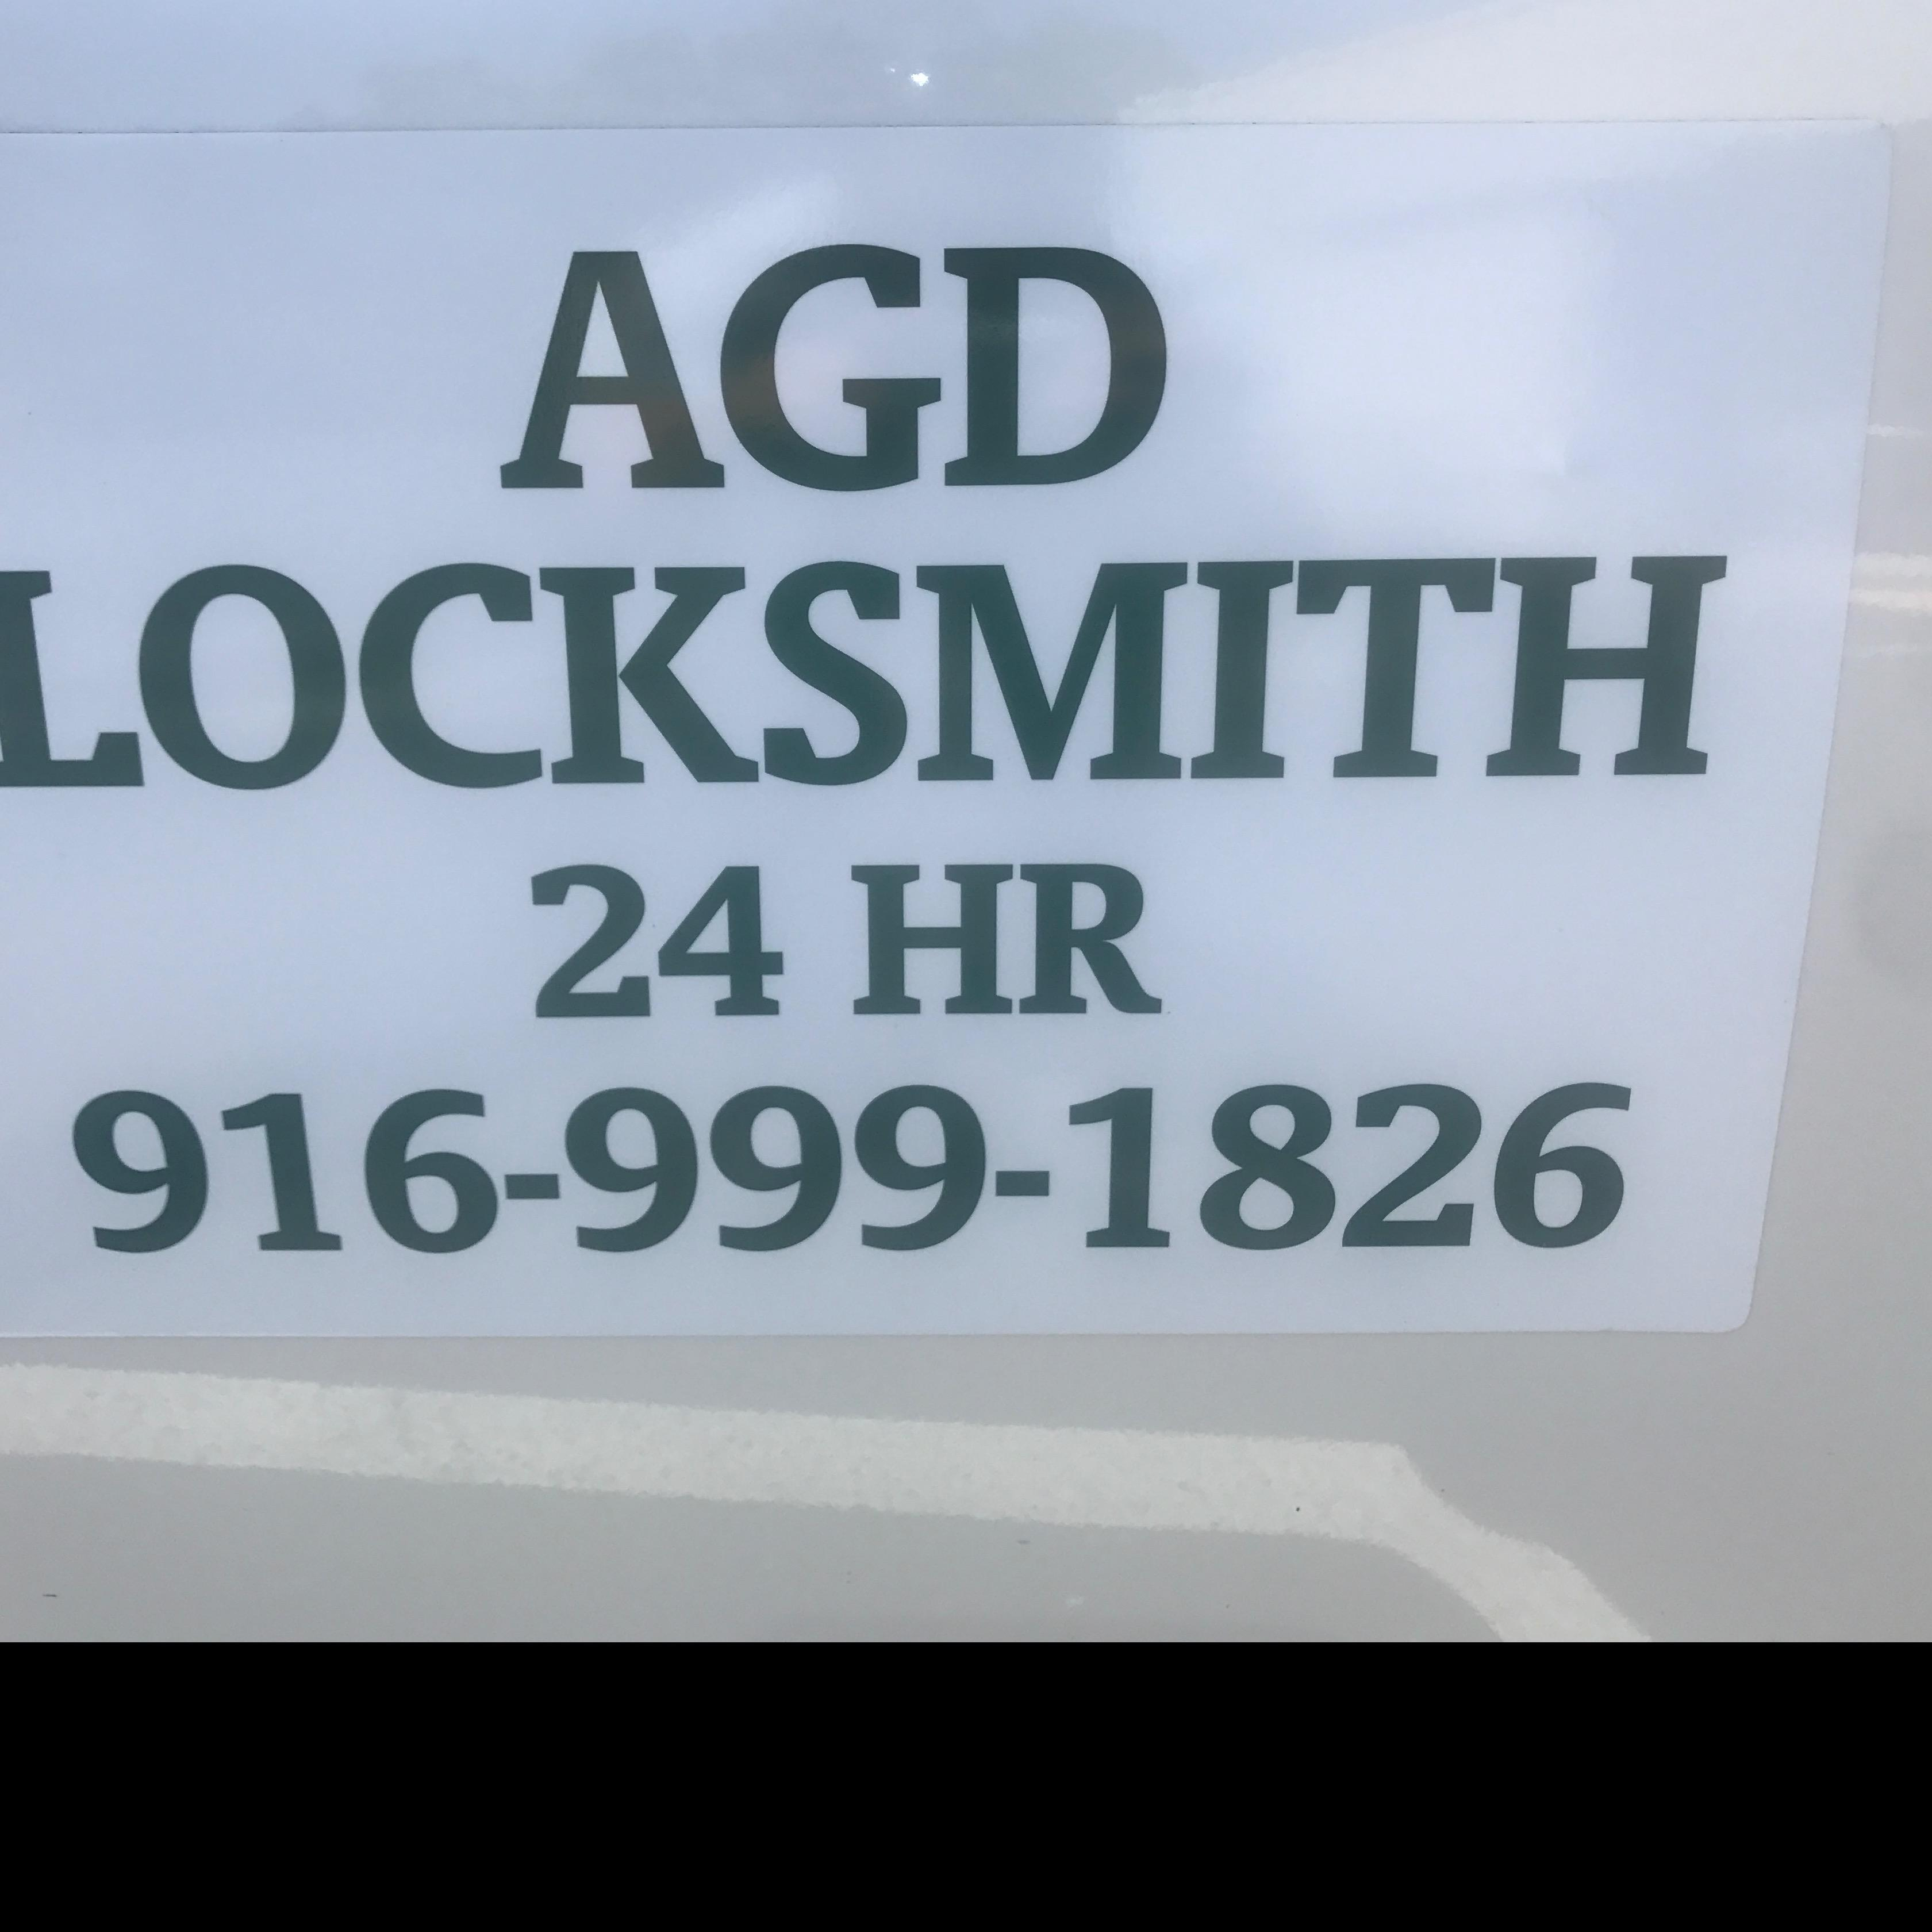 Agd locksmith inc